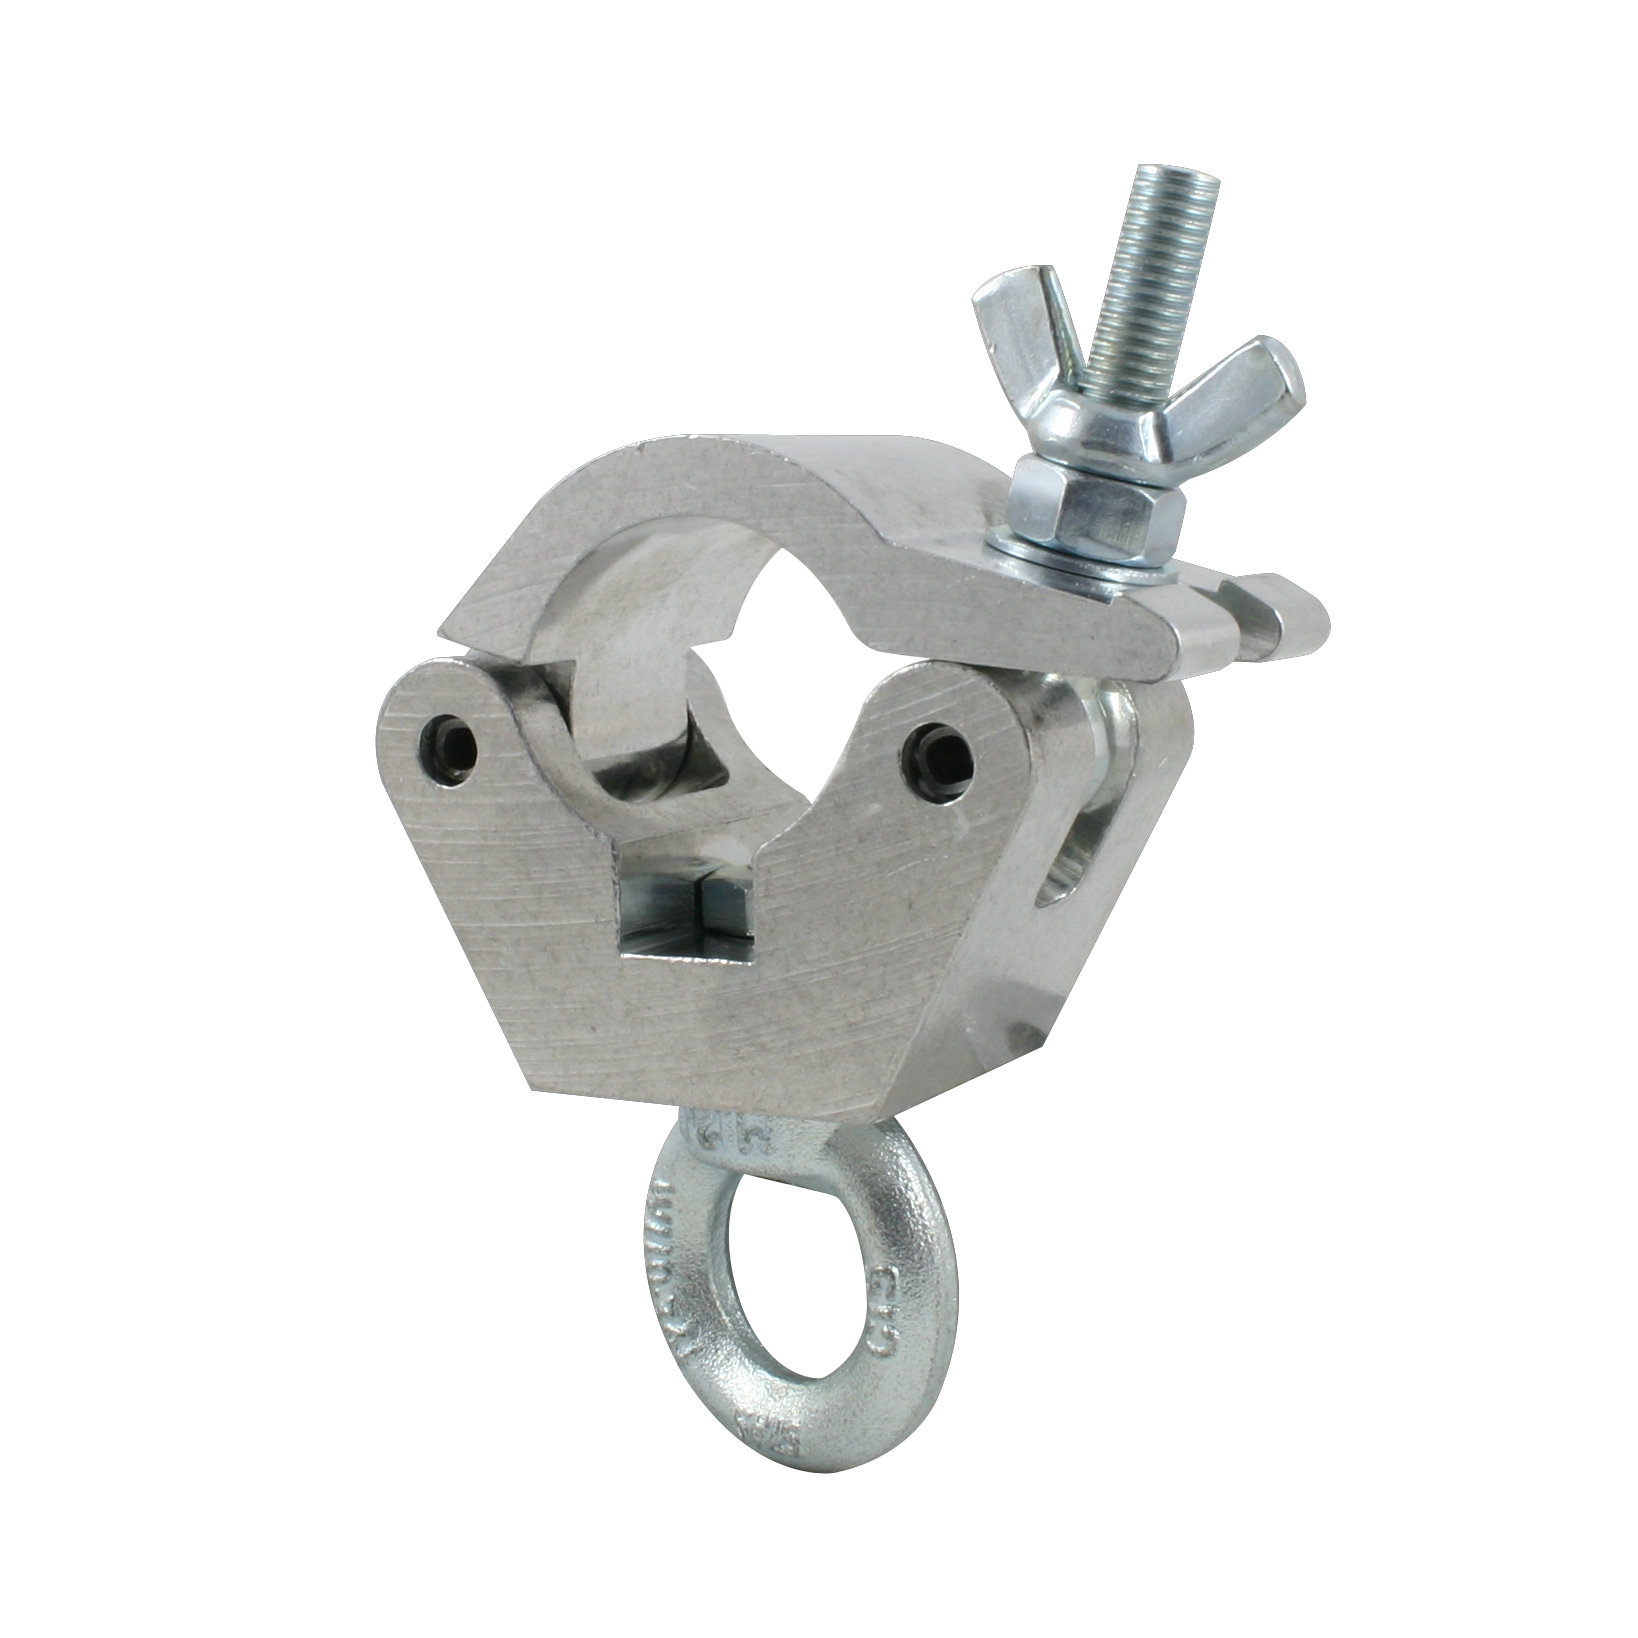 T57205 DOUGHTY CLAMP HANGING CLAMP (M12 eyenut - 340 kg) от магазина RiggerShop